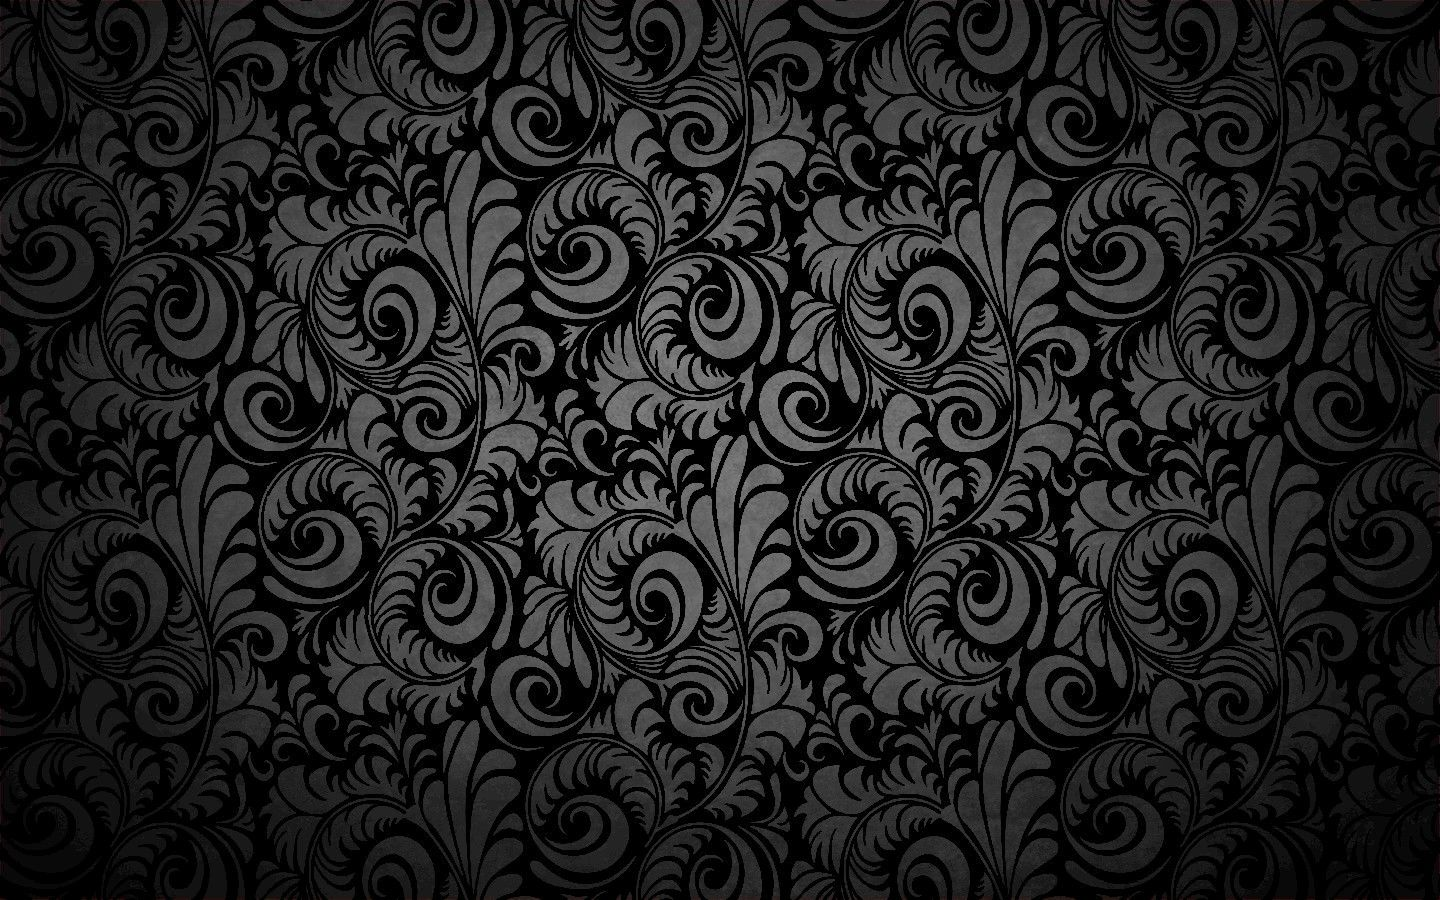 Dark Vintage Pattern Wallpaper Desktop Backgro 9767 Wallpaper